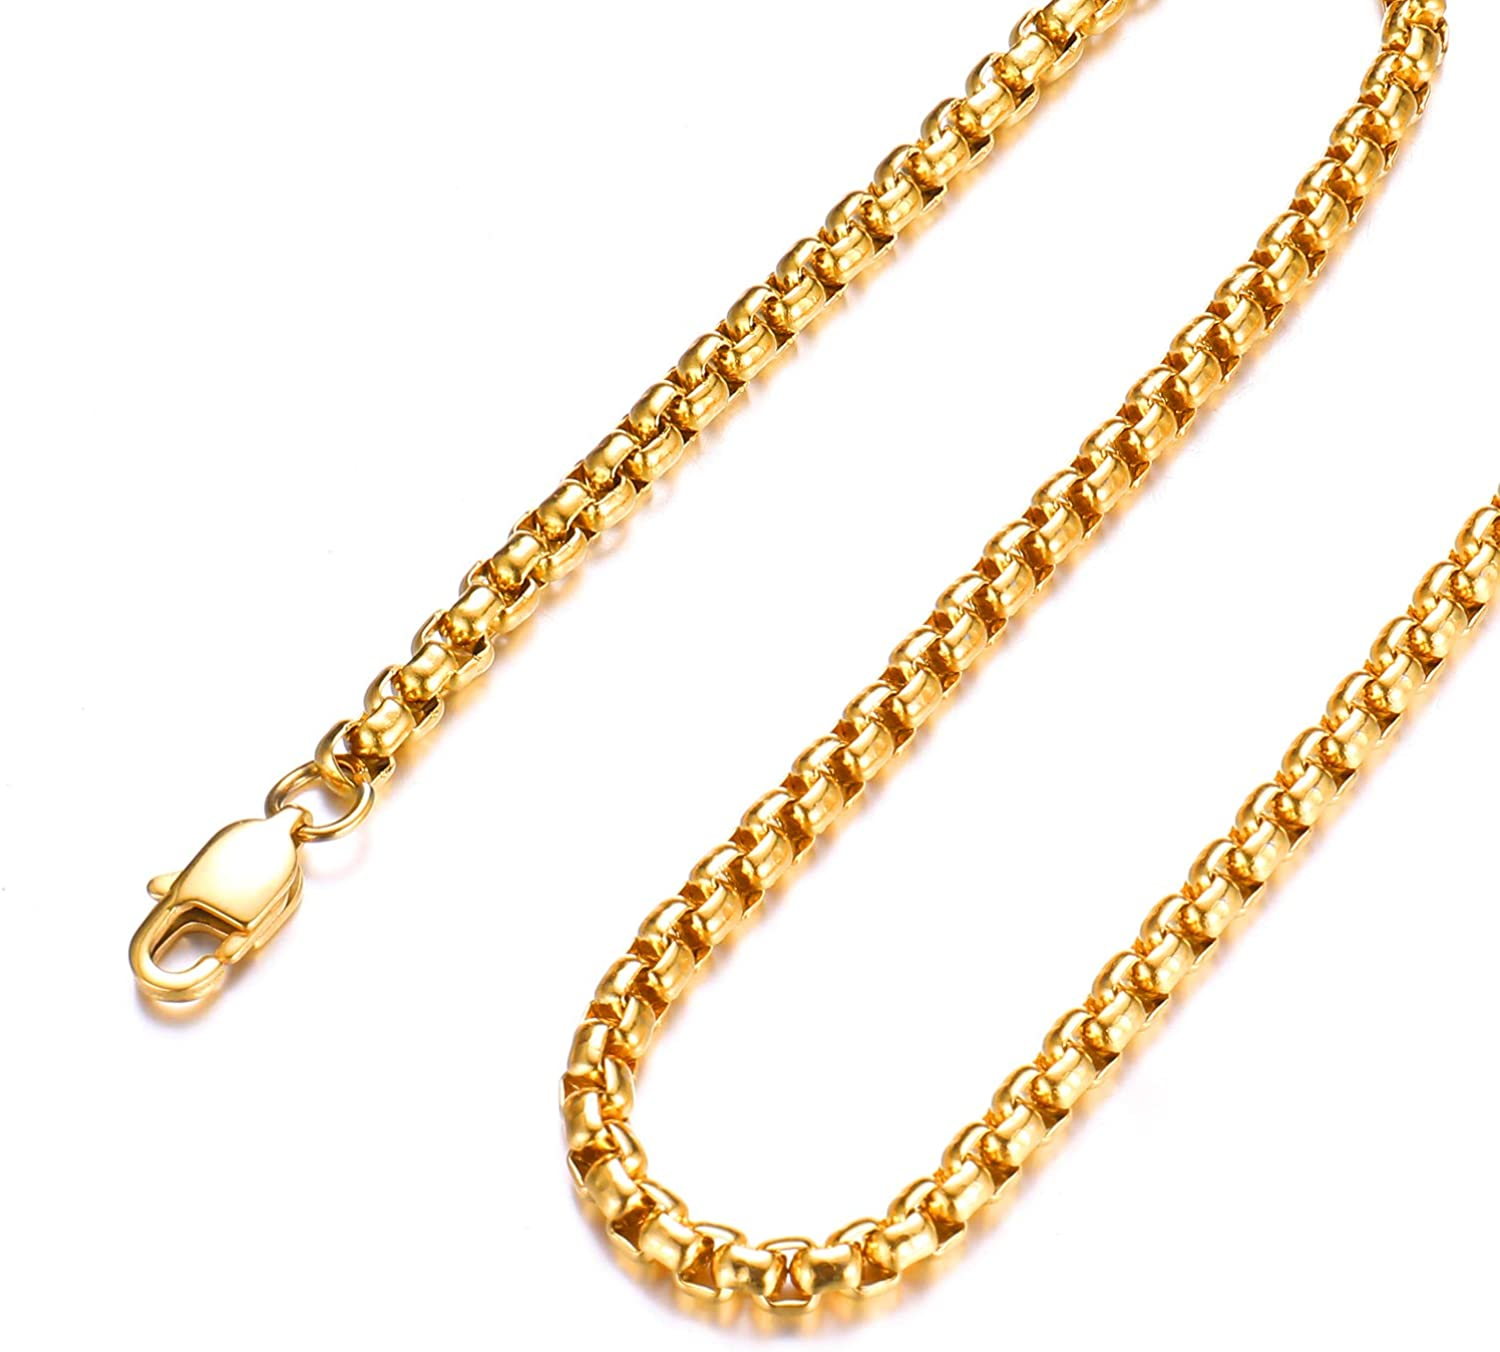 FEEL STYLE Men Necklace 18k Gold Plated Chain 3-5mm Twist Rope Box Necklace Chain for Mens Boy Teen Jewelry Gift 14-30 Inch